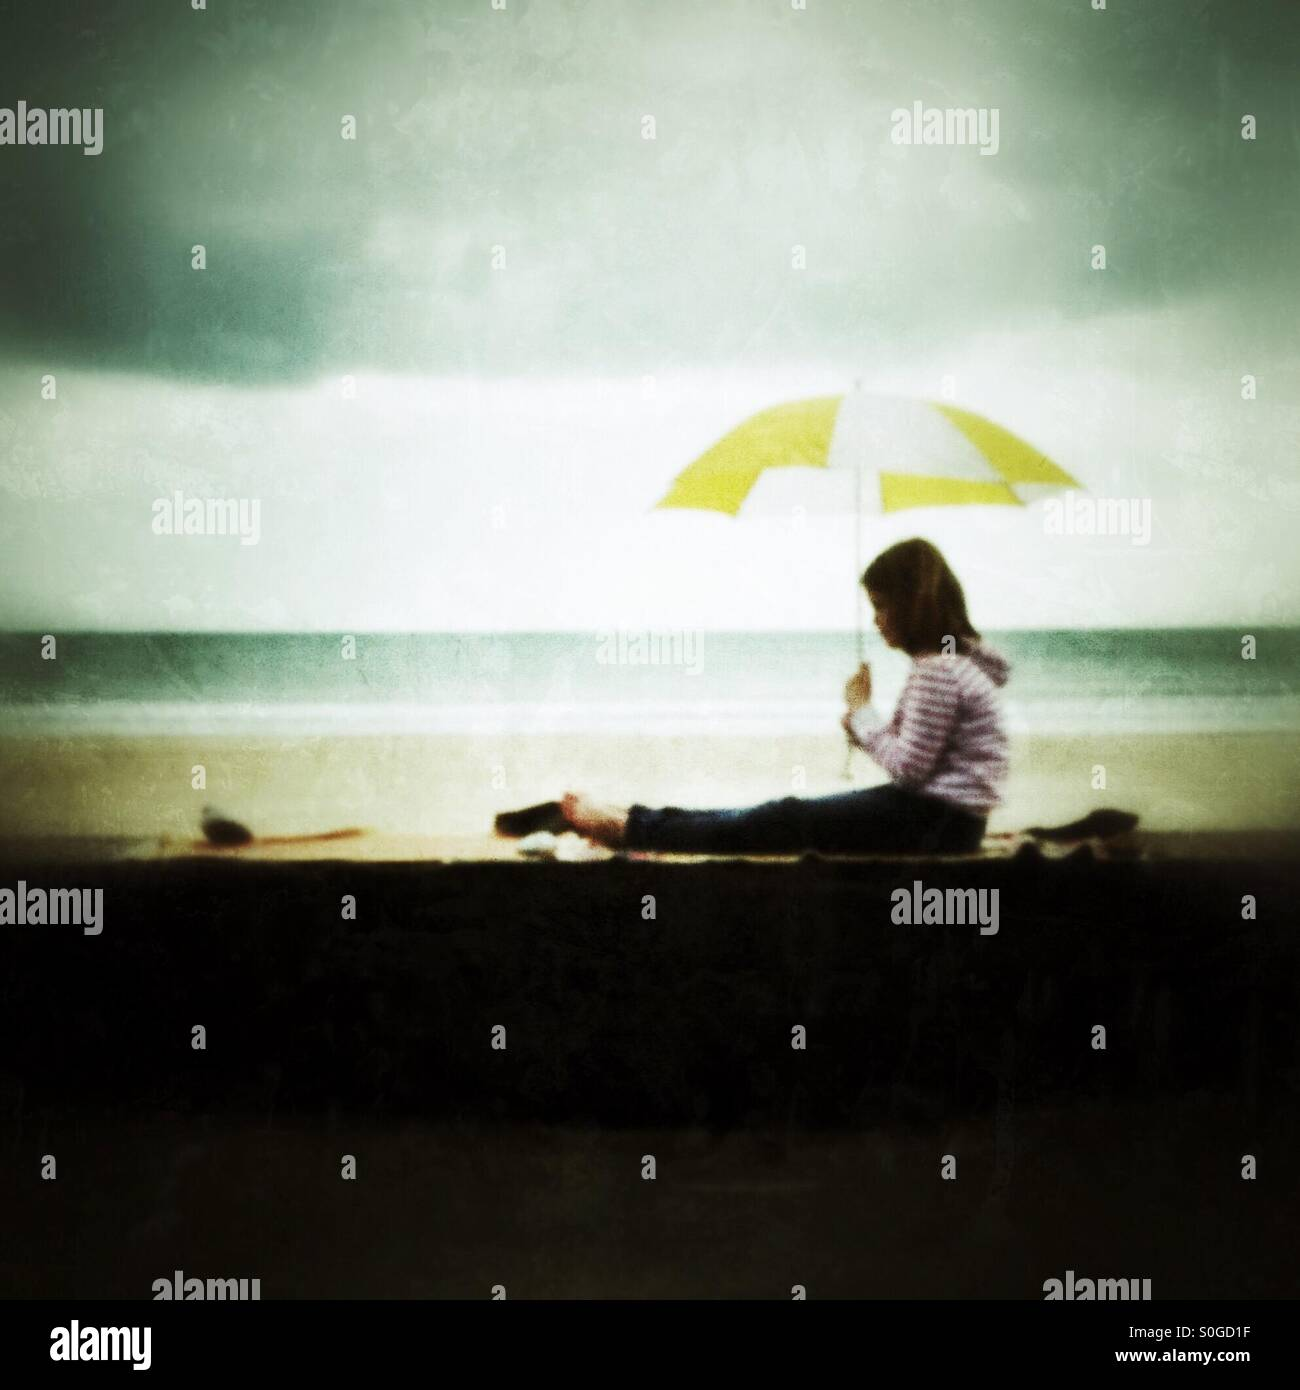 Girl sat on a wall with an umbrella - Stock Image